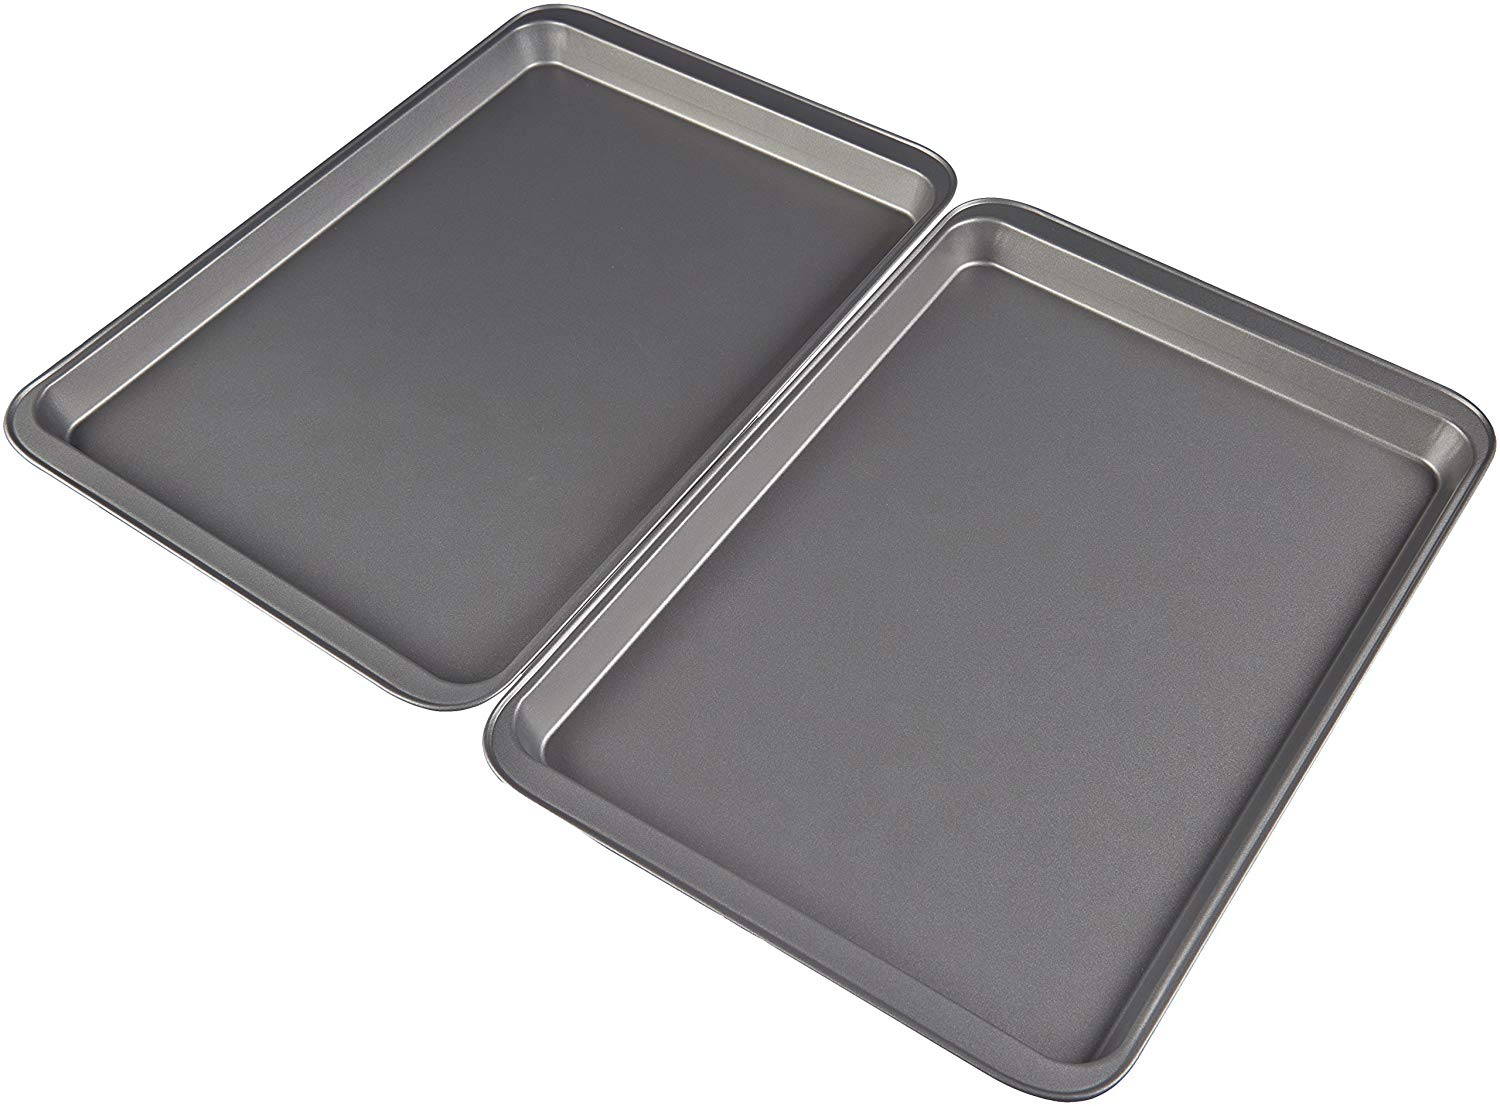 Amazons Basics Nonstick Baking Sheet